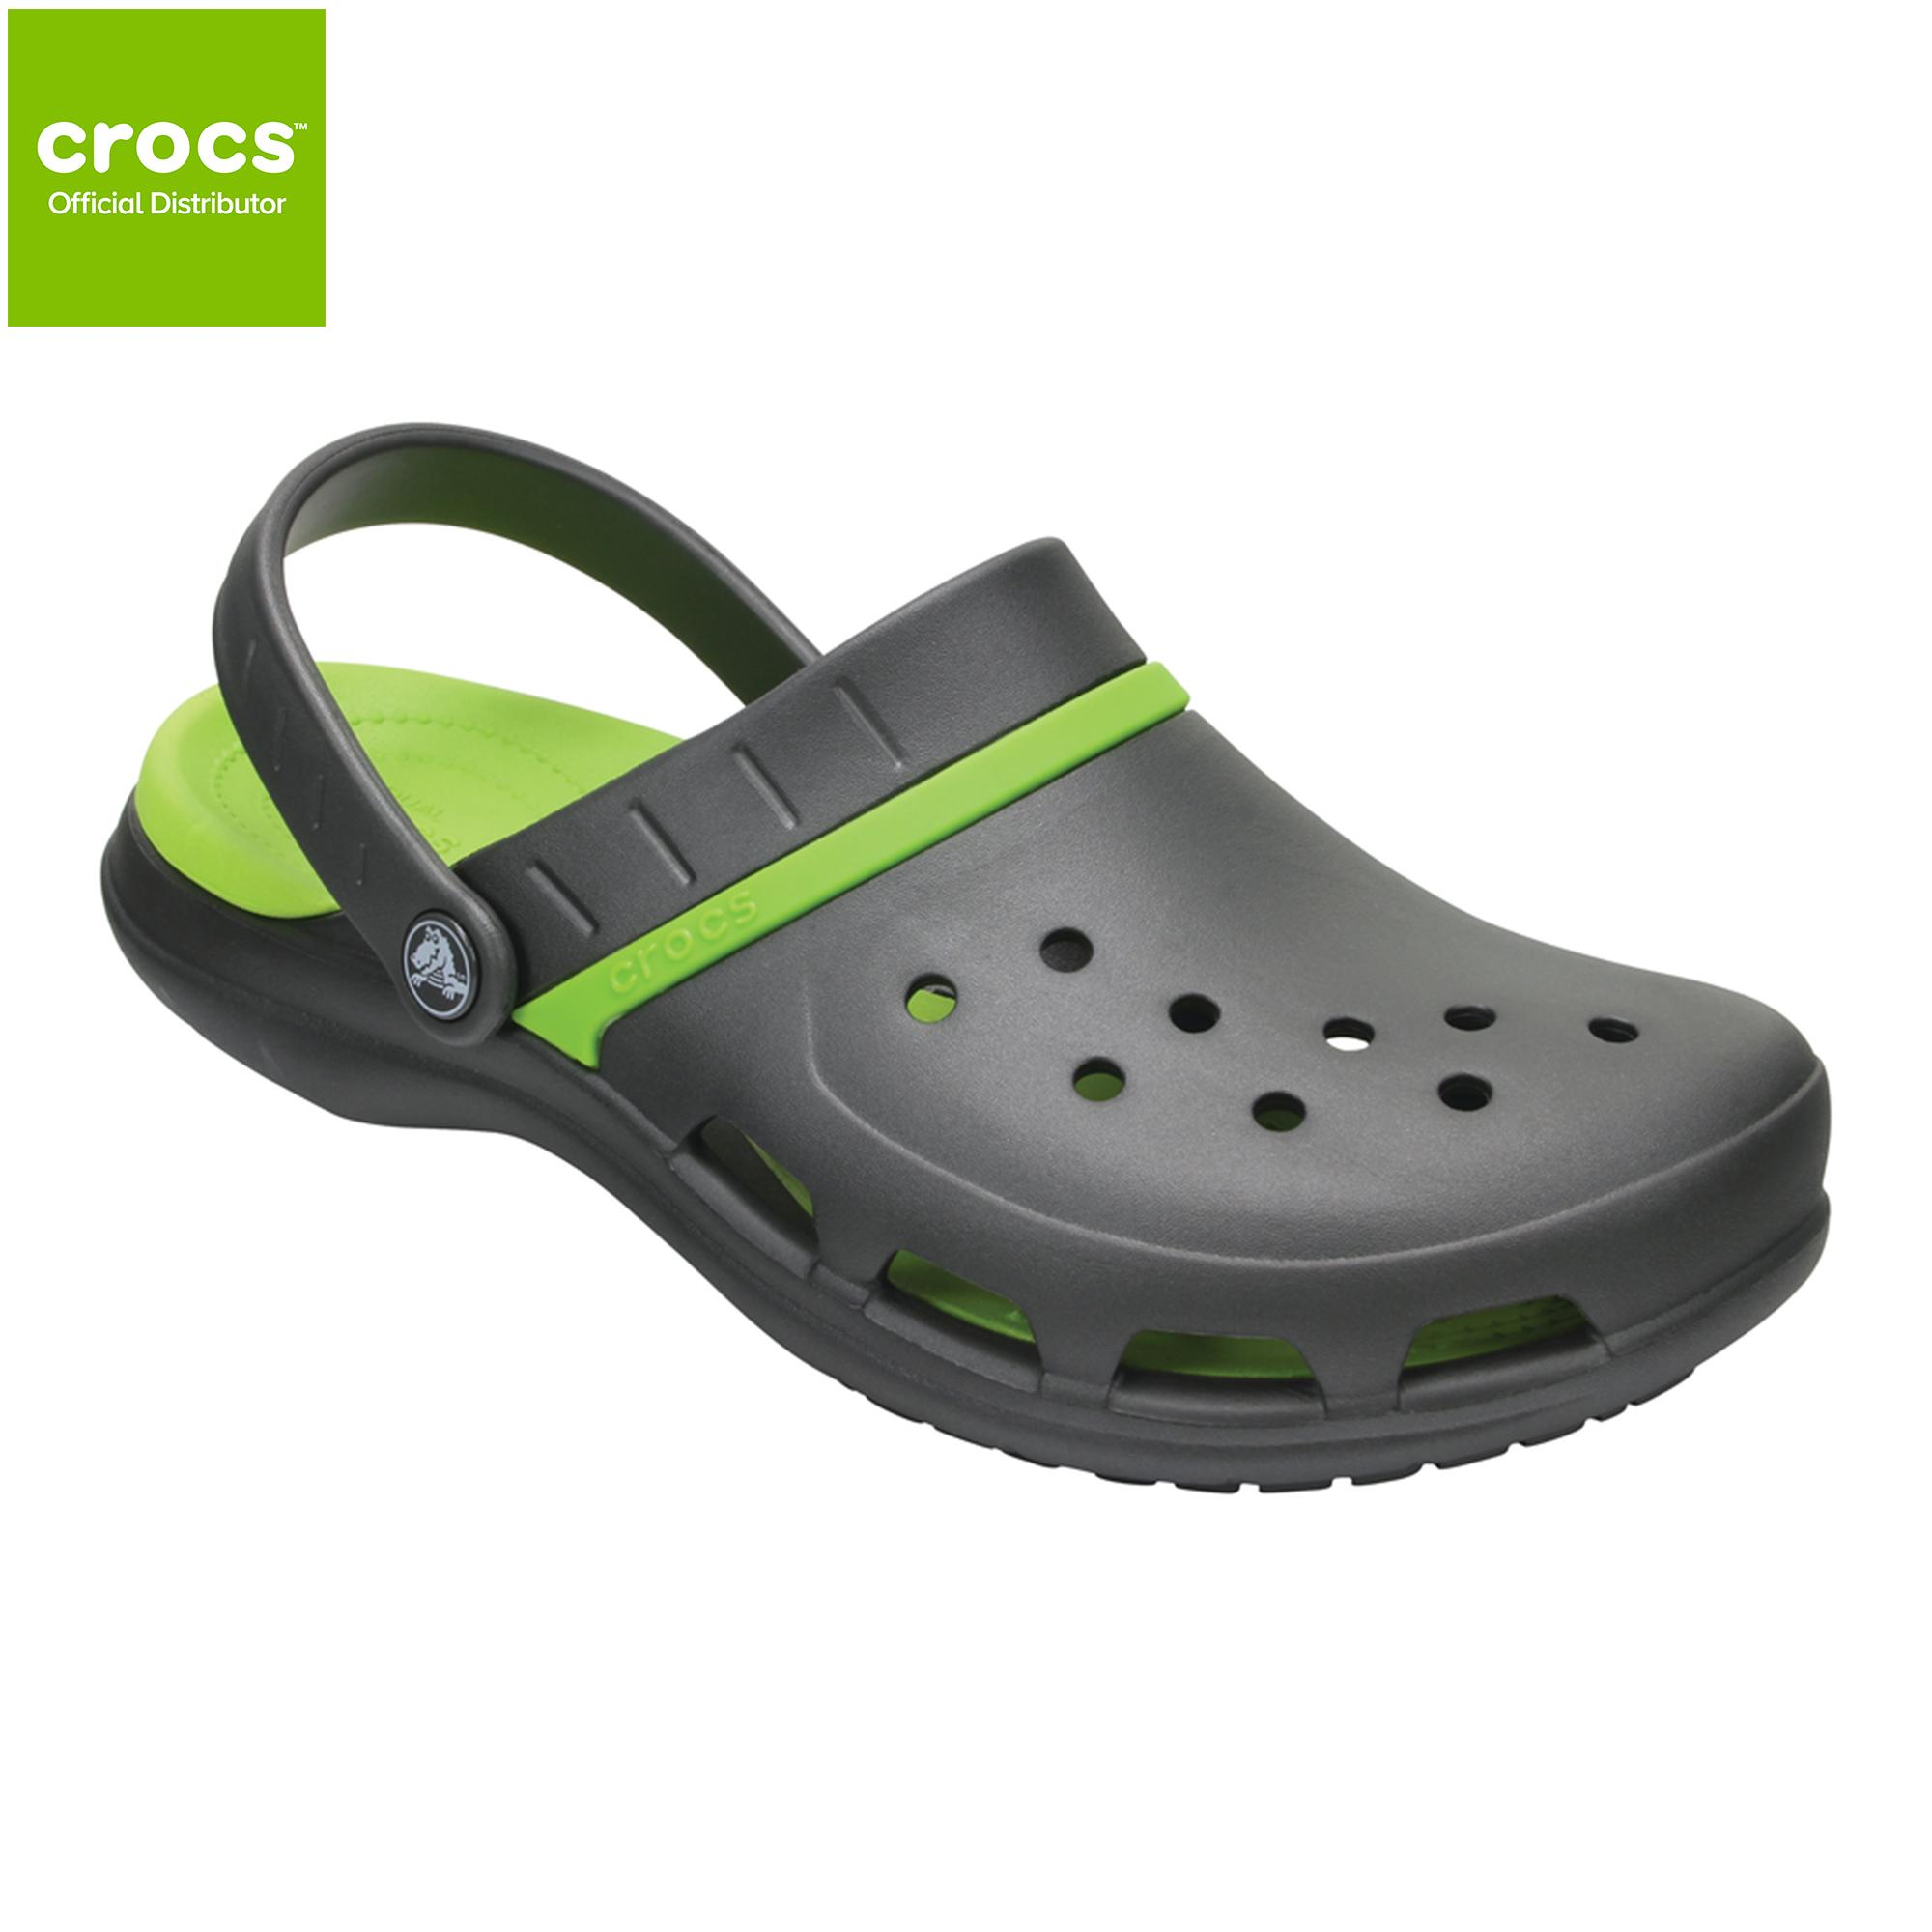 d7037f9136d7 Crocs Philippines  Crocs price list - Crocs Flats